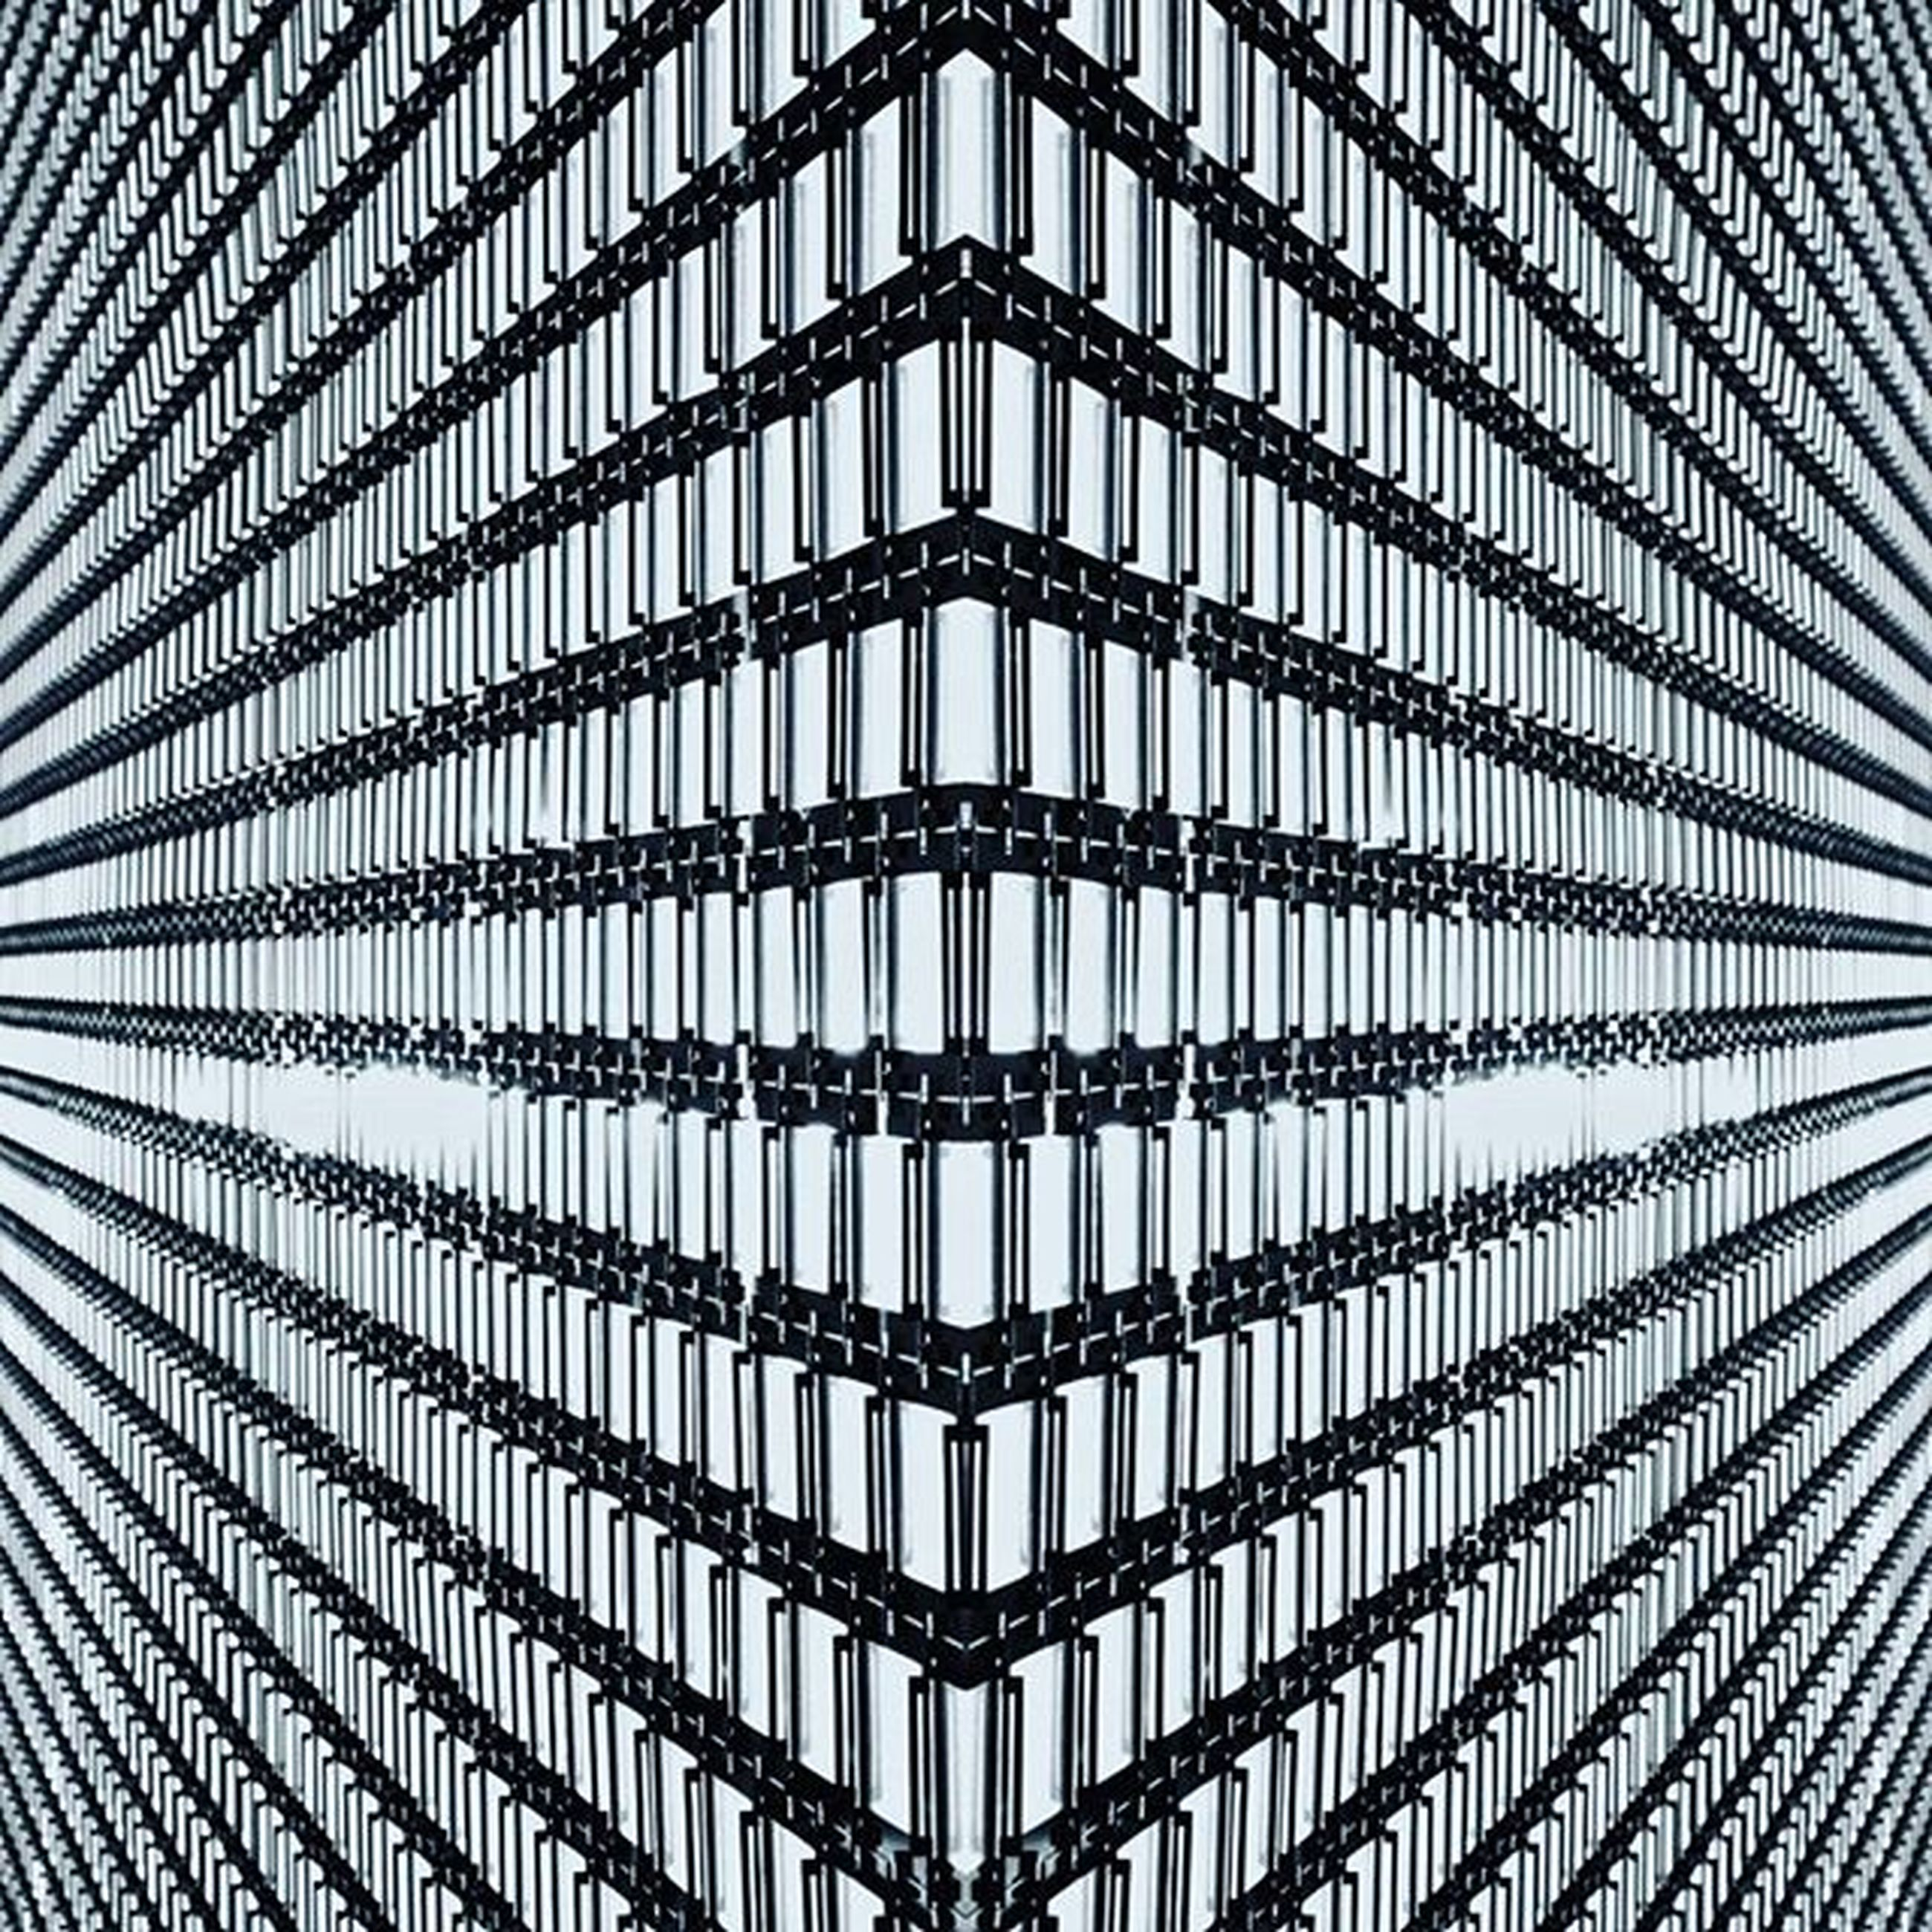 architecture, built structure, modern, full frame, building exterior, glass - material, repetition, pattern, low angle view, backgrounds, office building, window, in a row, building, indoors, city, architectural feature, design, reflection, day